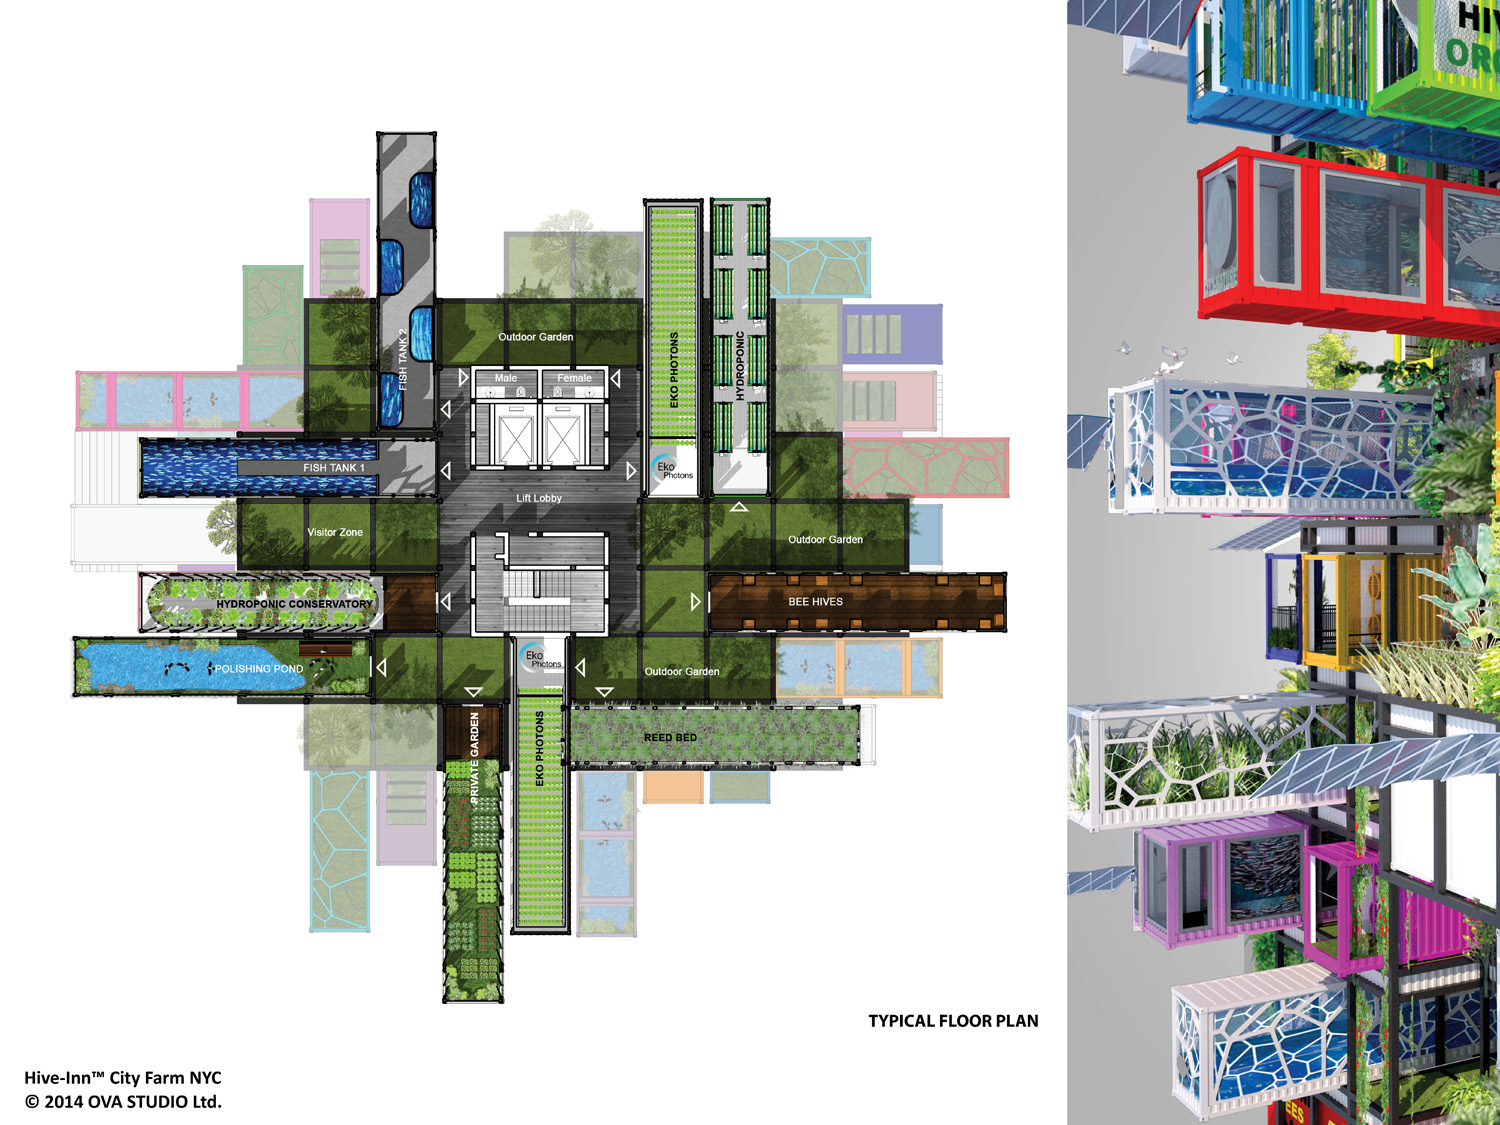 Shipping Container Floor Plan Designs Hive Farm Proposes Plug And Play Vertical Farming Intercon